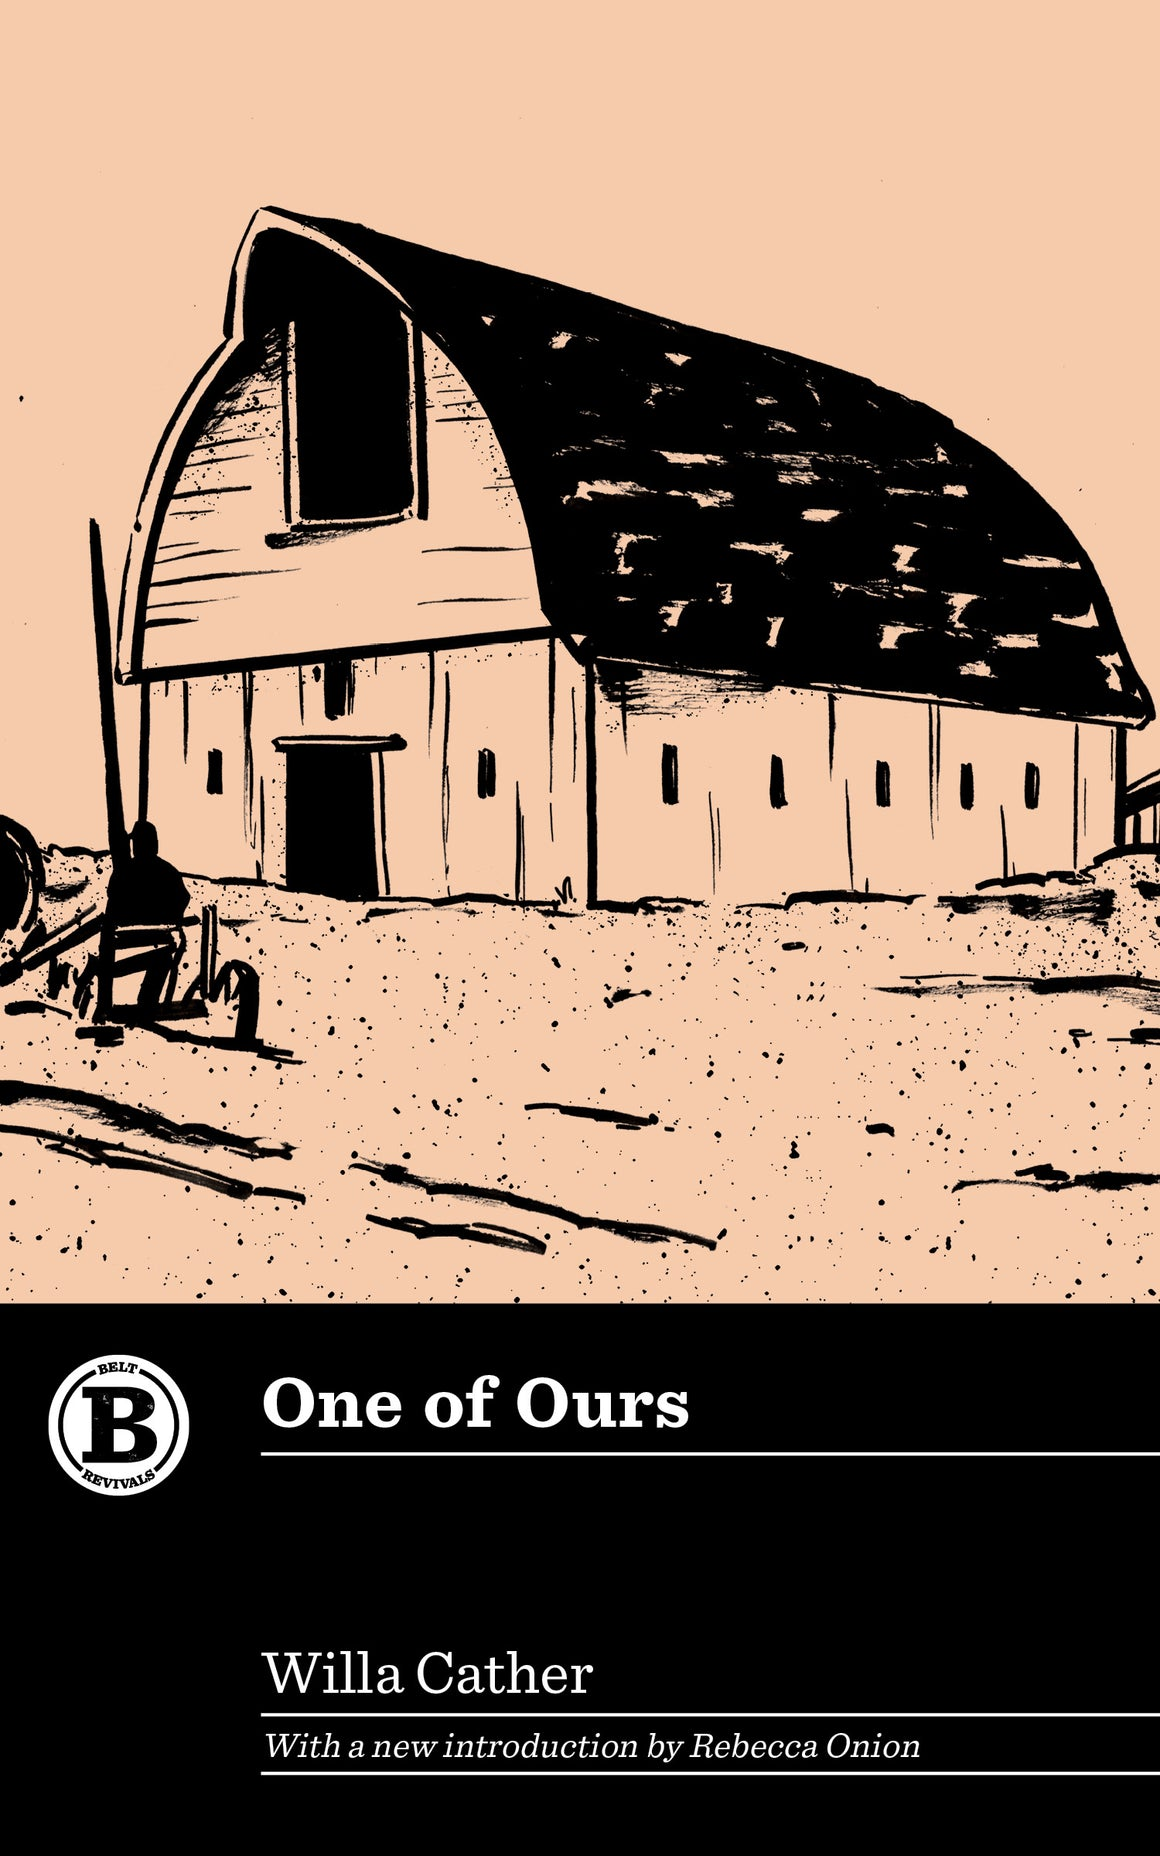 One of Ours by Willa Cather - Belt Publishing